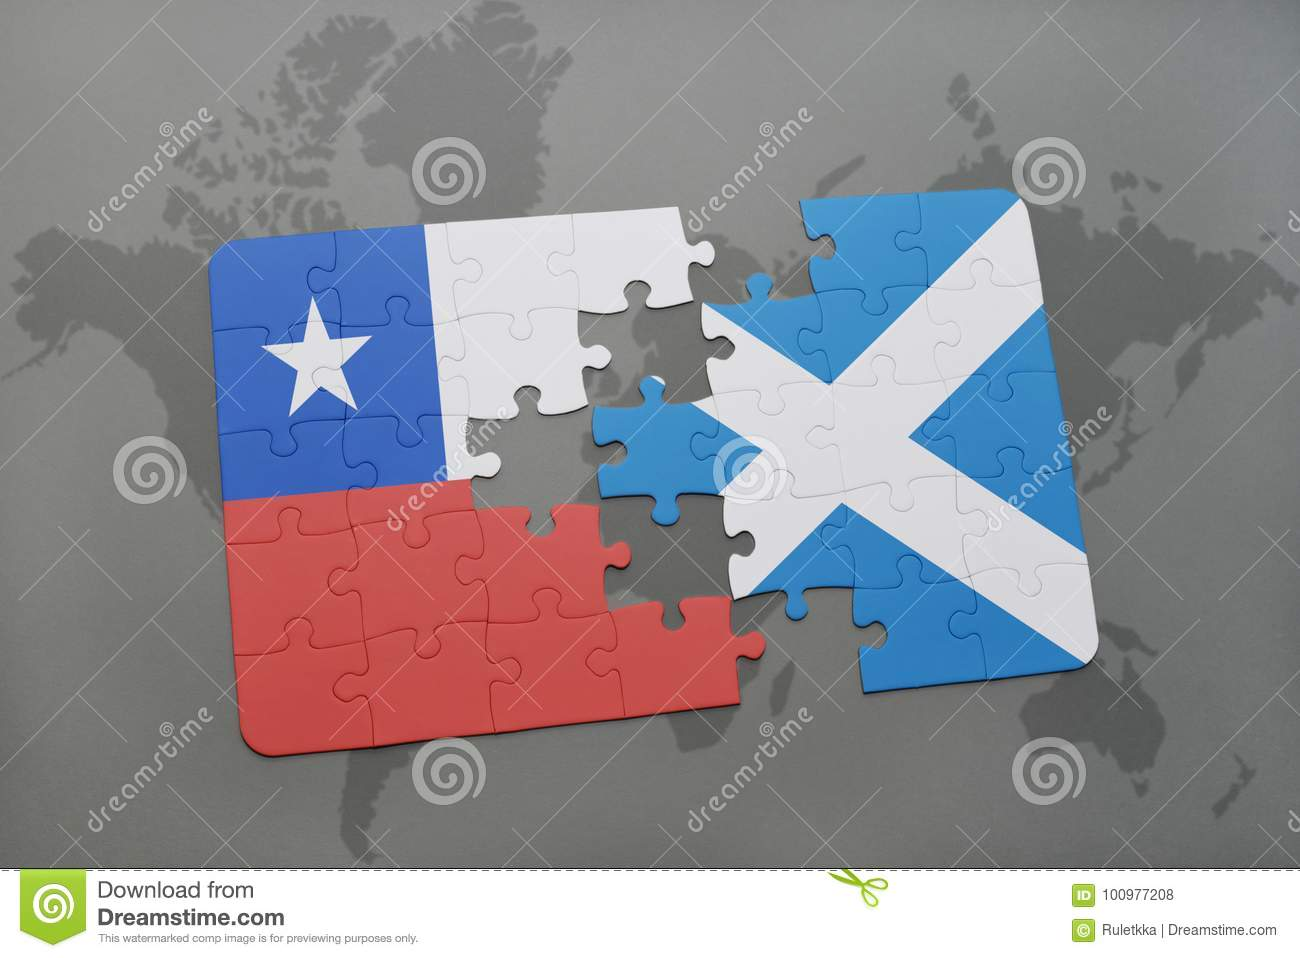 Puzzle with the national flag of chile and scotland on a world map download puzzle with the national flag of chile and scotland on a world map background gumiabroncs Image collections